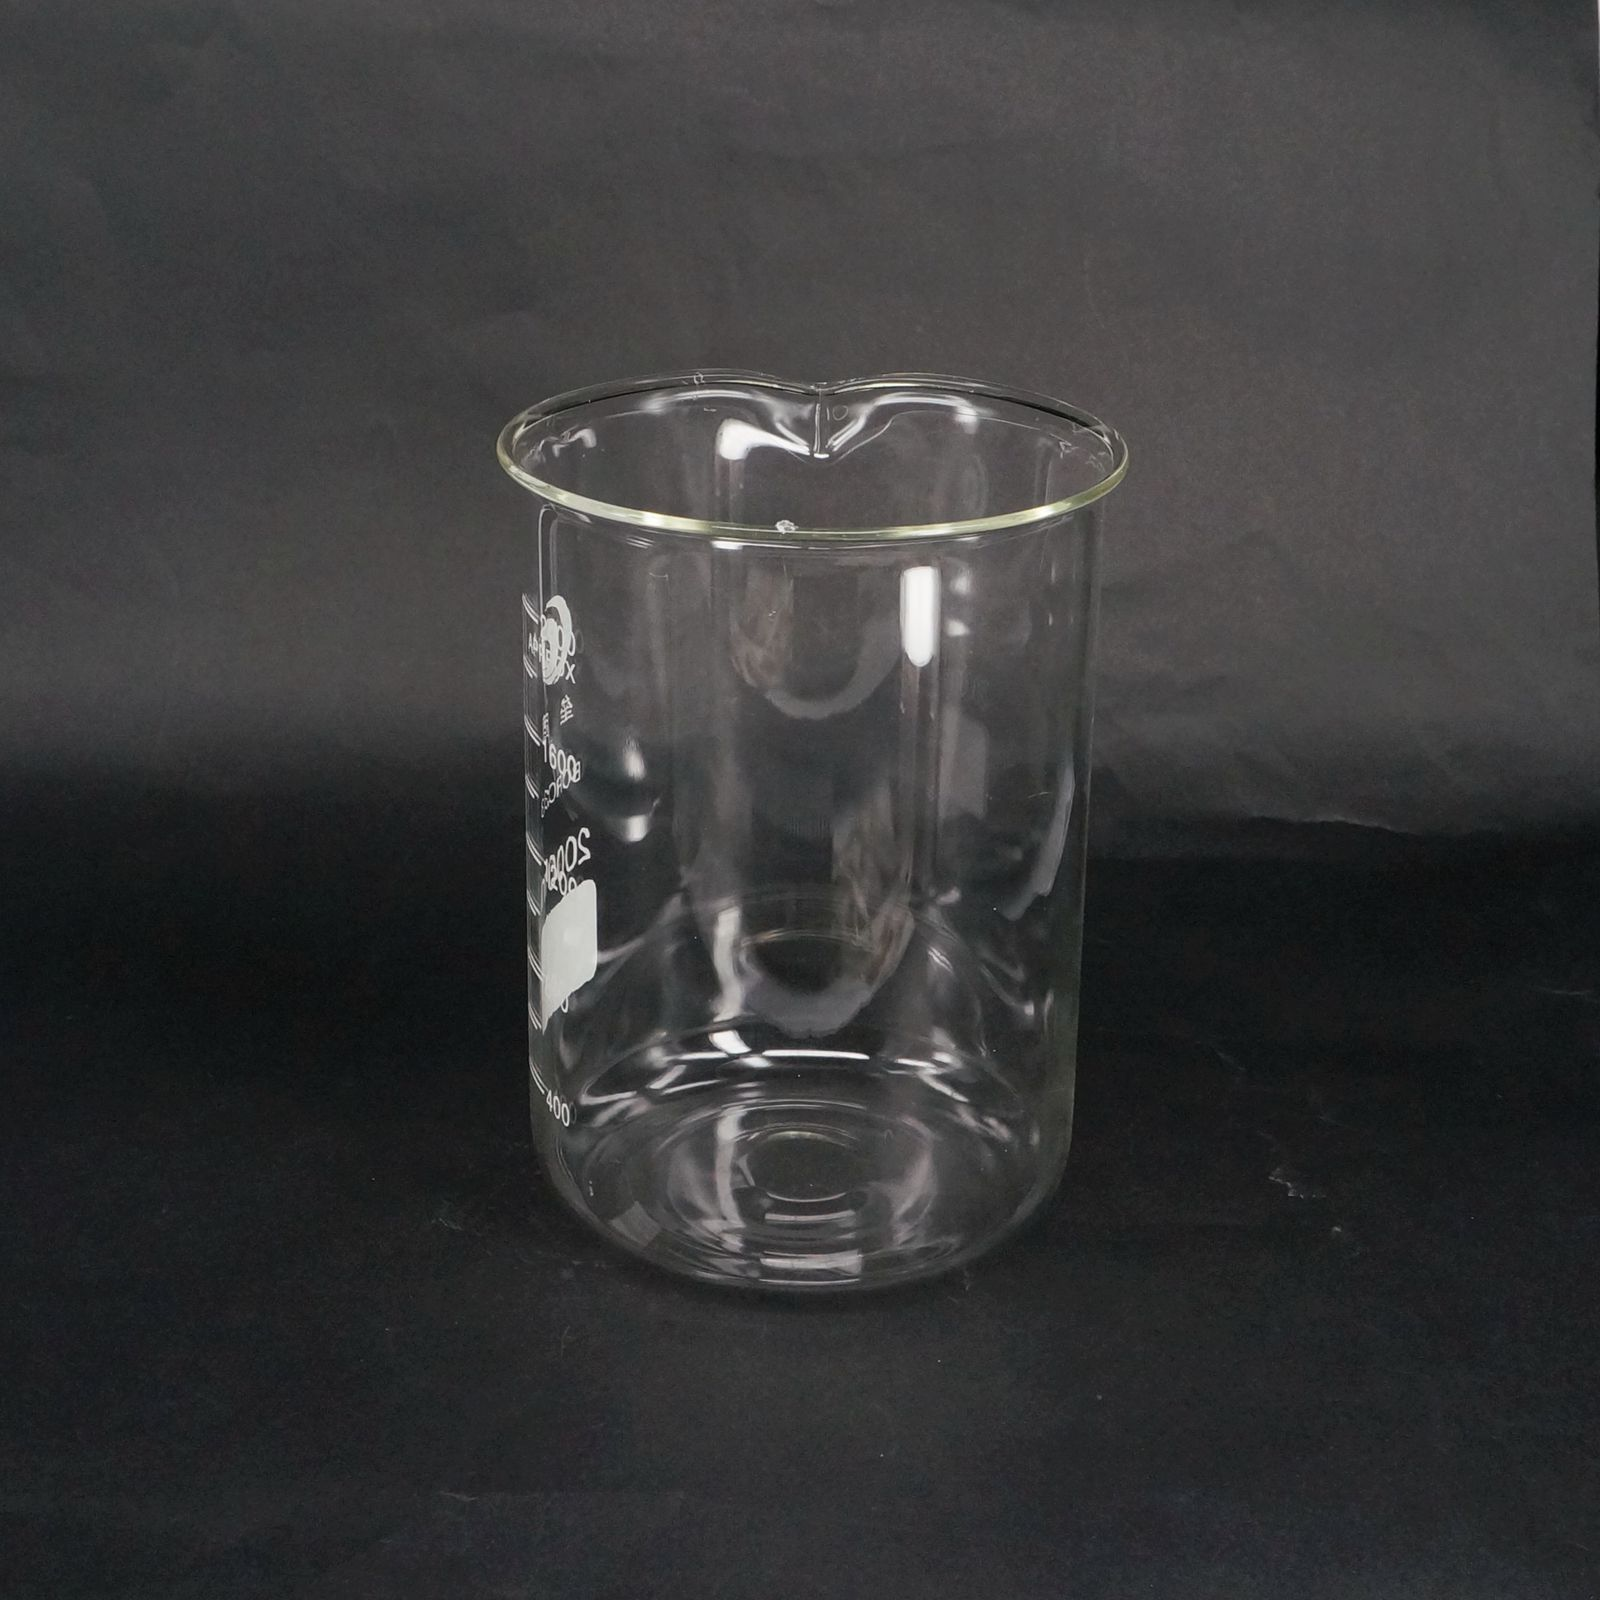 2000ml Low Form Beaker Chemistry Laboratory Borosilicate Glass Transparent Beaker Thickened with spout FREE SHIP 1000ml plastic handle beaker chemistry laboratory borosilicate transparent glass beaker with spout free ship